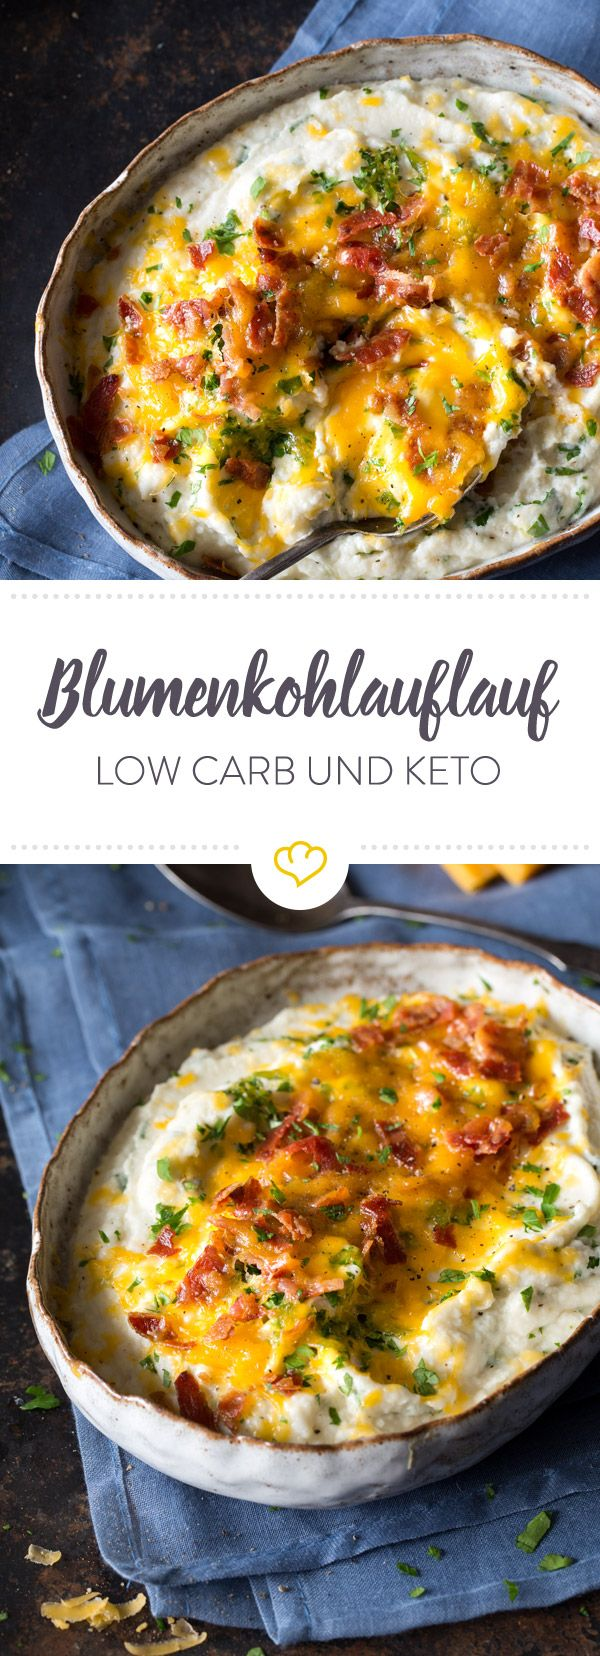 Photo of Cauliflower casserole with cheddar: low carb and keto!